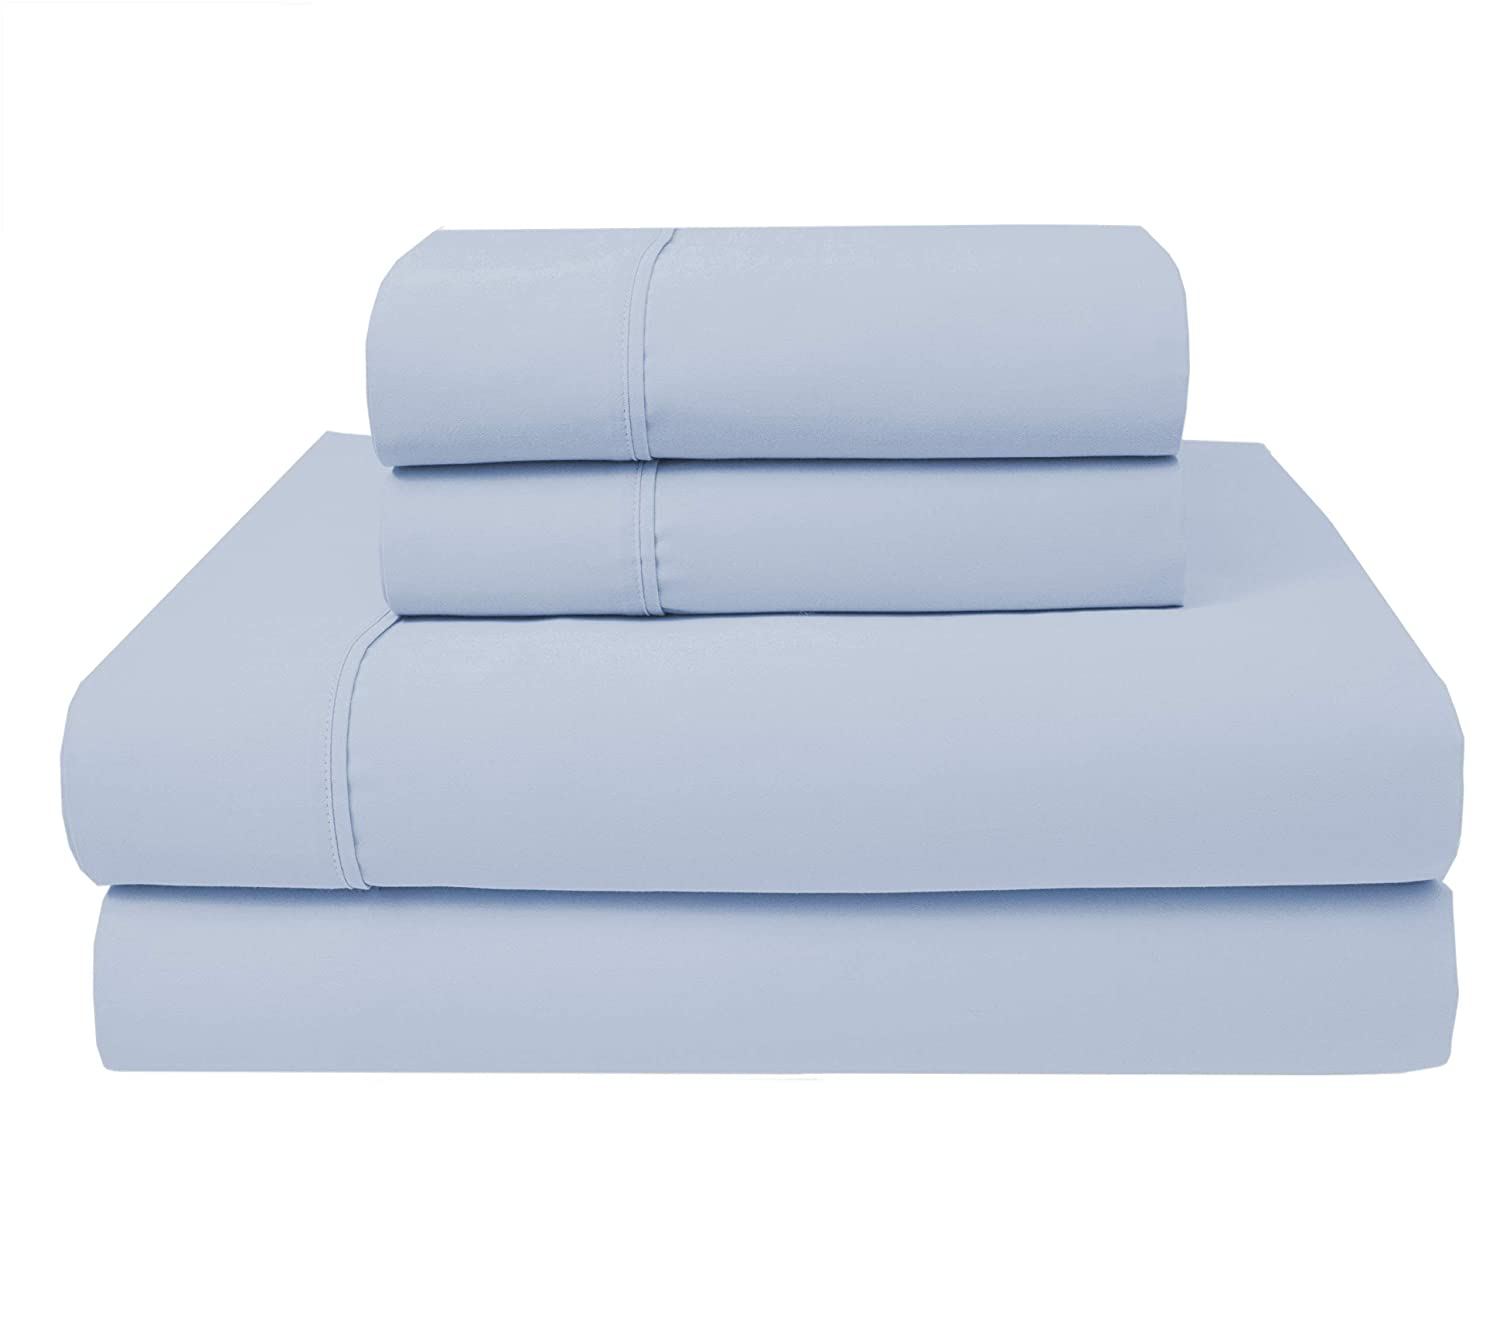 """Purity Home 300 Thread Count 100% Combed Cotton Sheet Set,4 Piece Set, Bestselling Full Sheets Percale Weave, Classic Z Hem, Cool & Breathable, Patented Fitted Sheet Fits Up to 18"""" Deep Pocket, Aqua"""